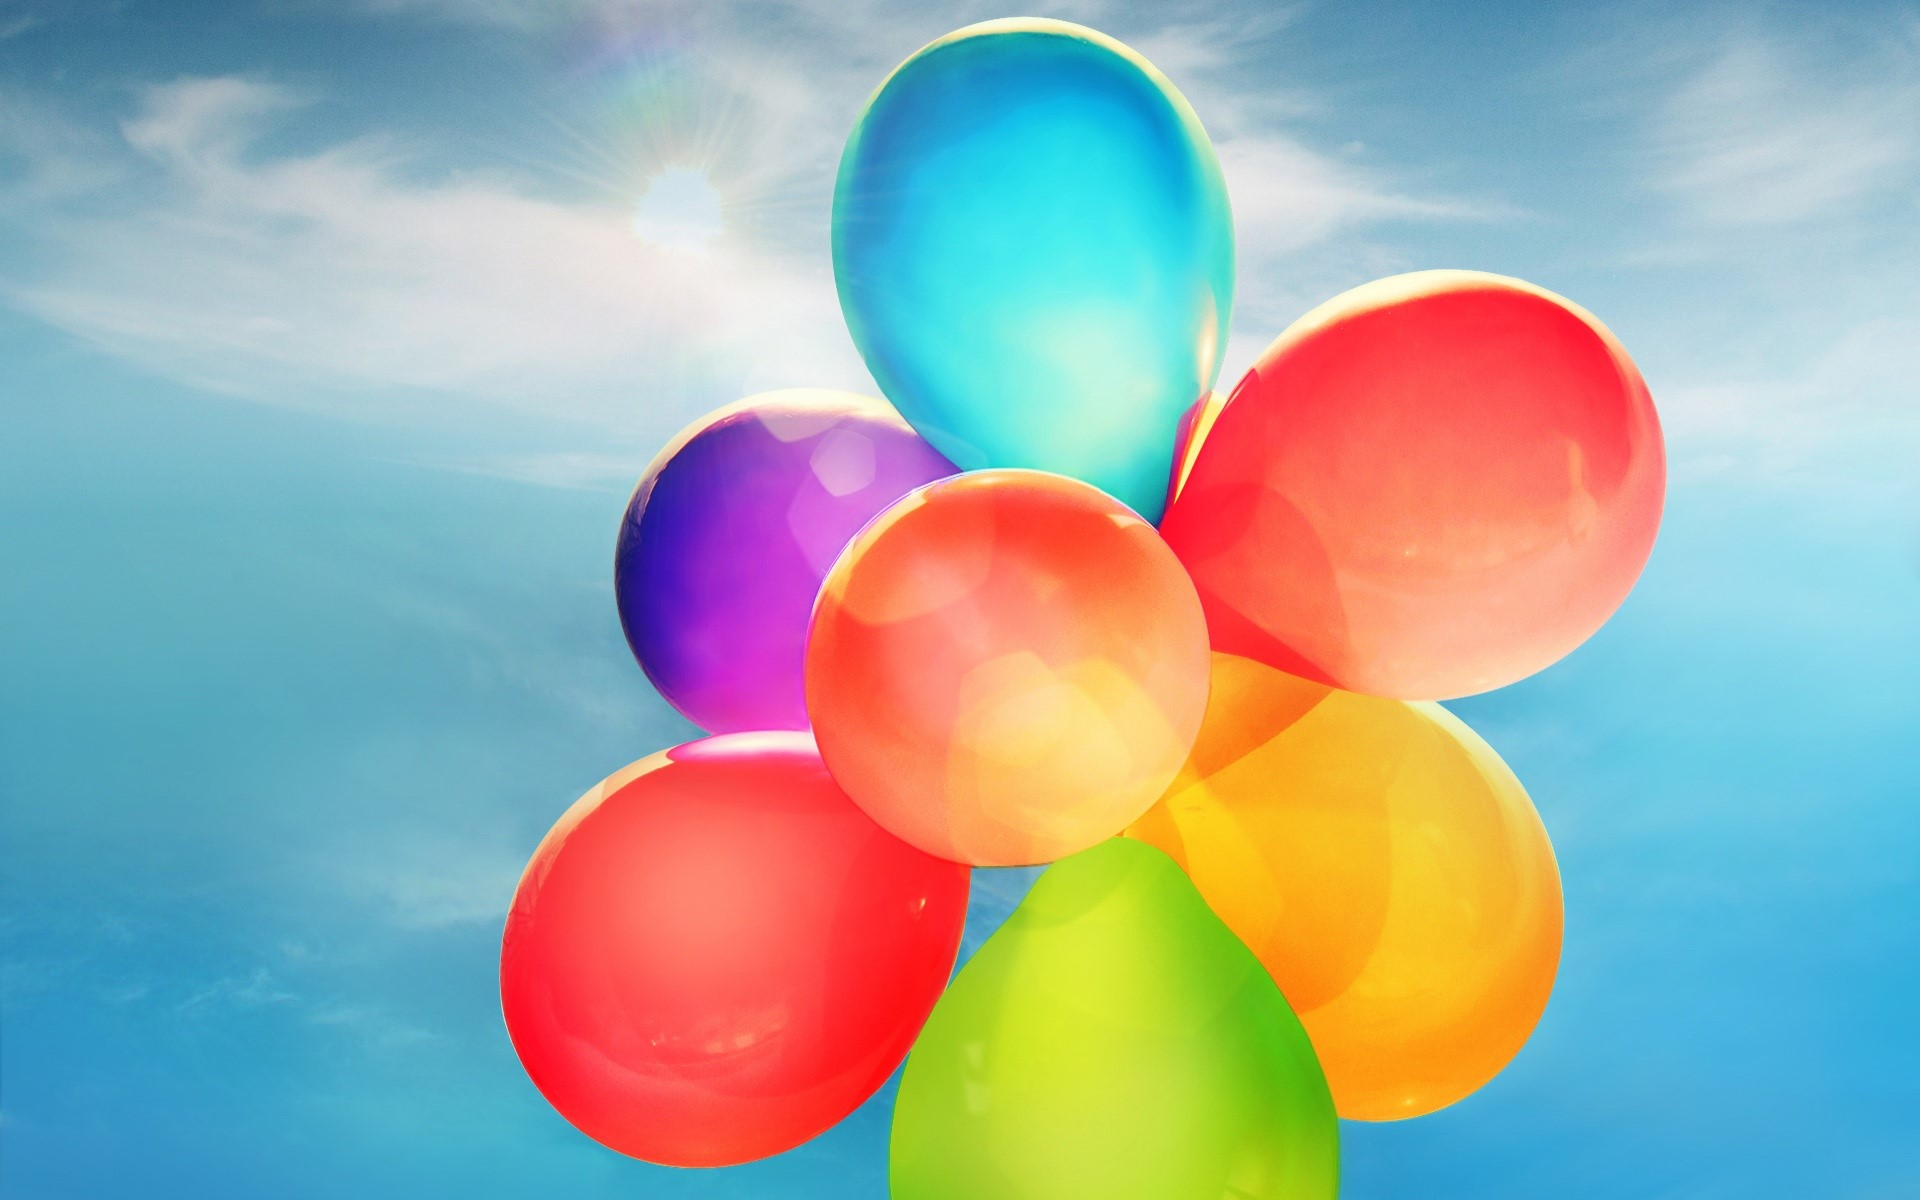 Wallpaper Colorful balloons